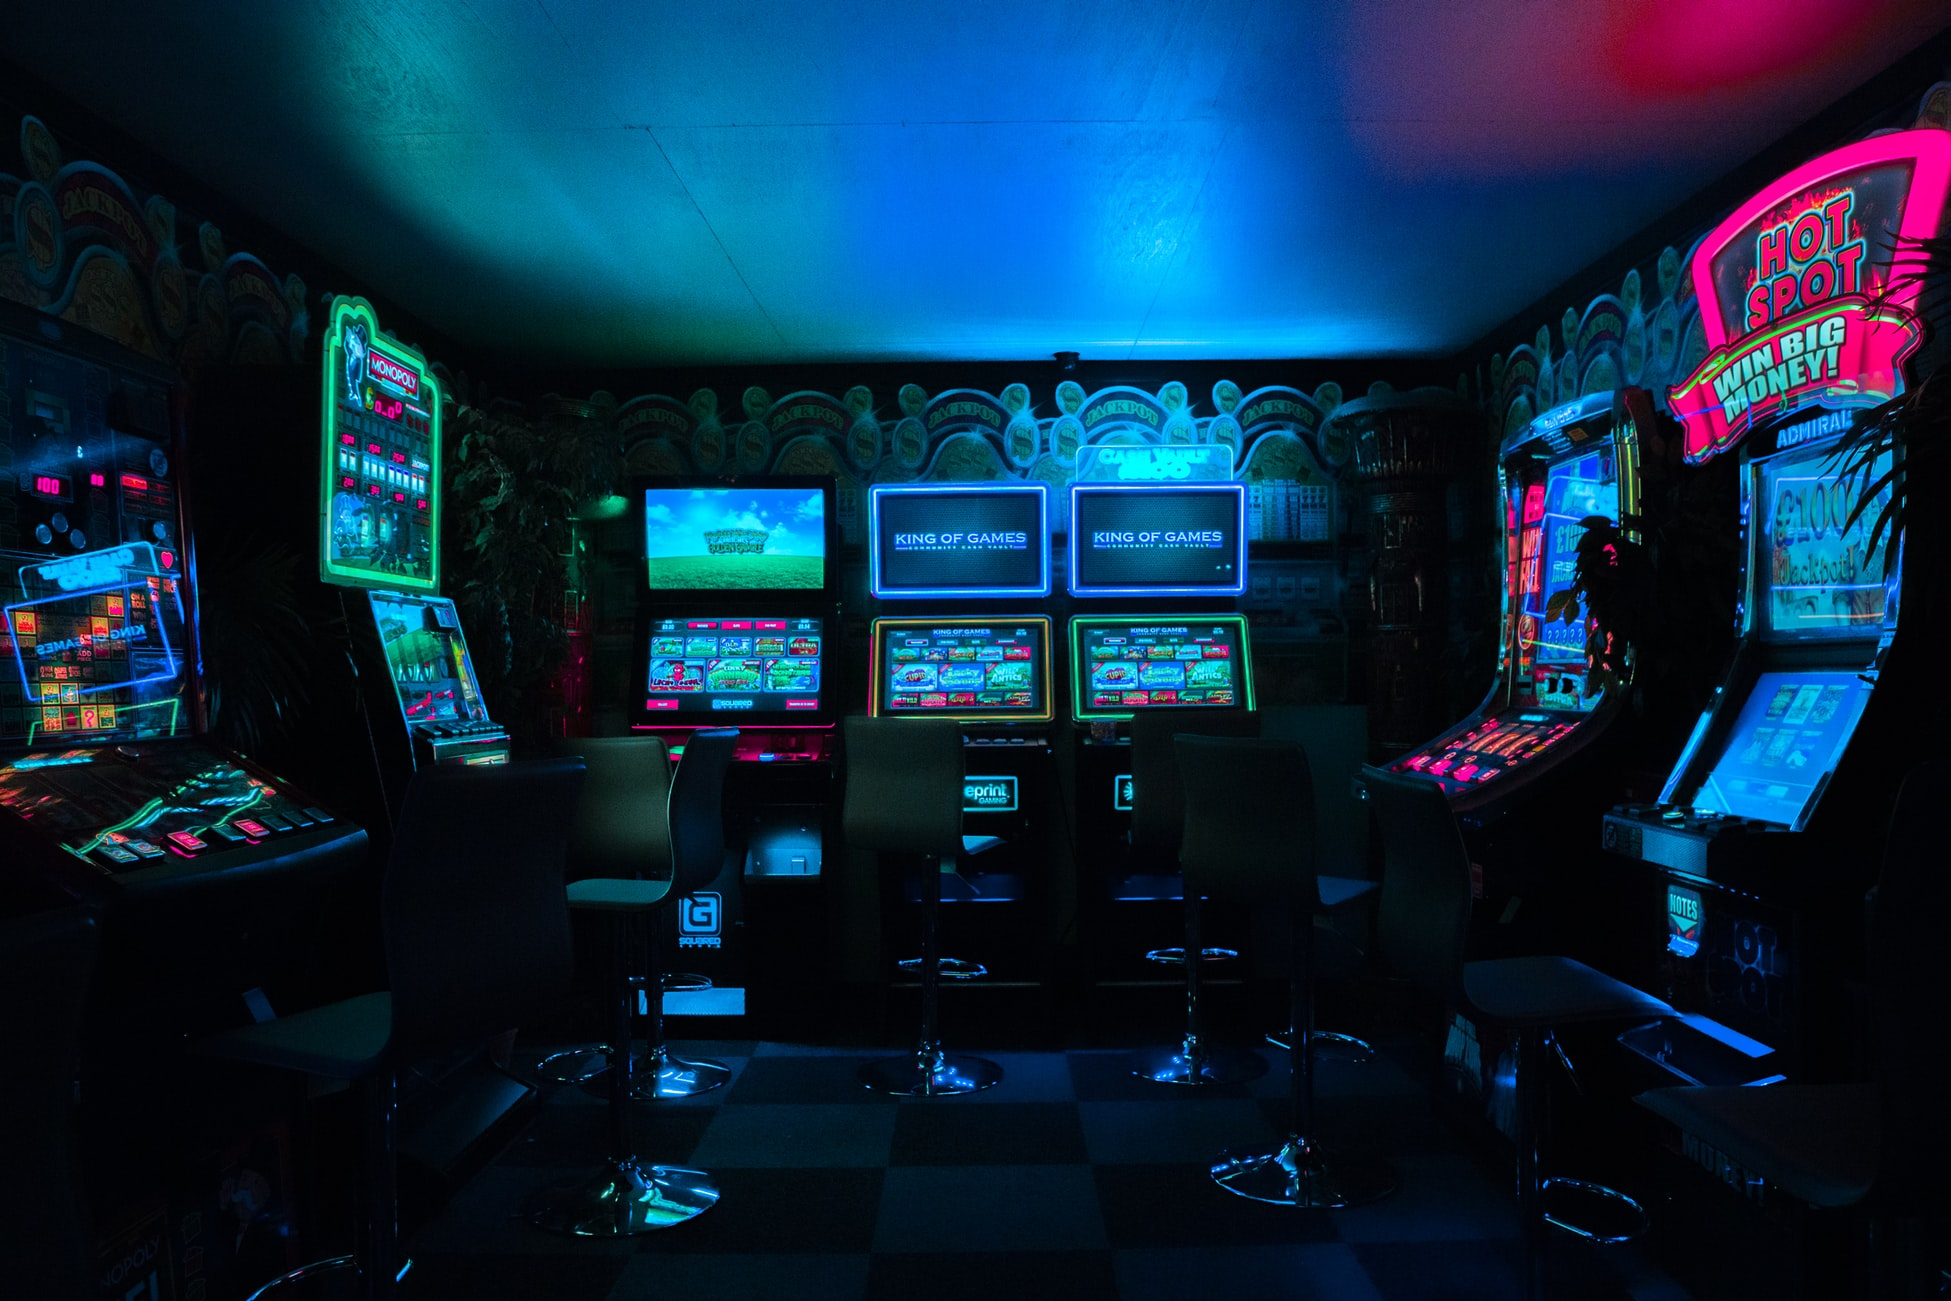 Video Game Arcade Image